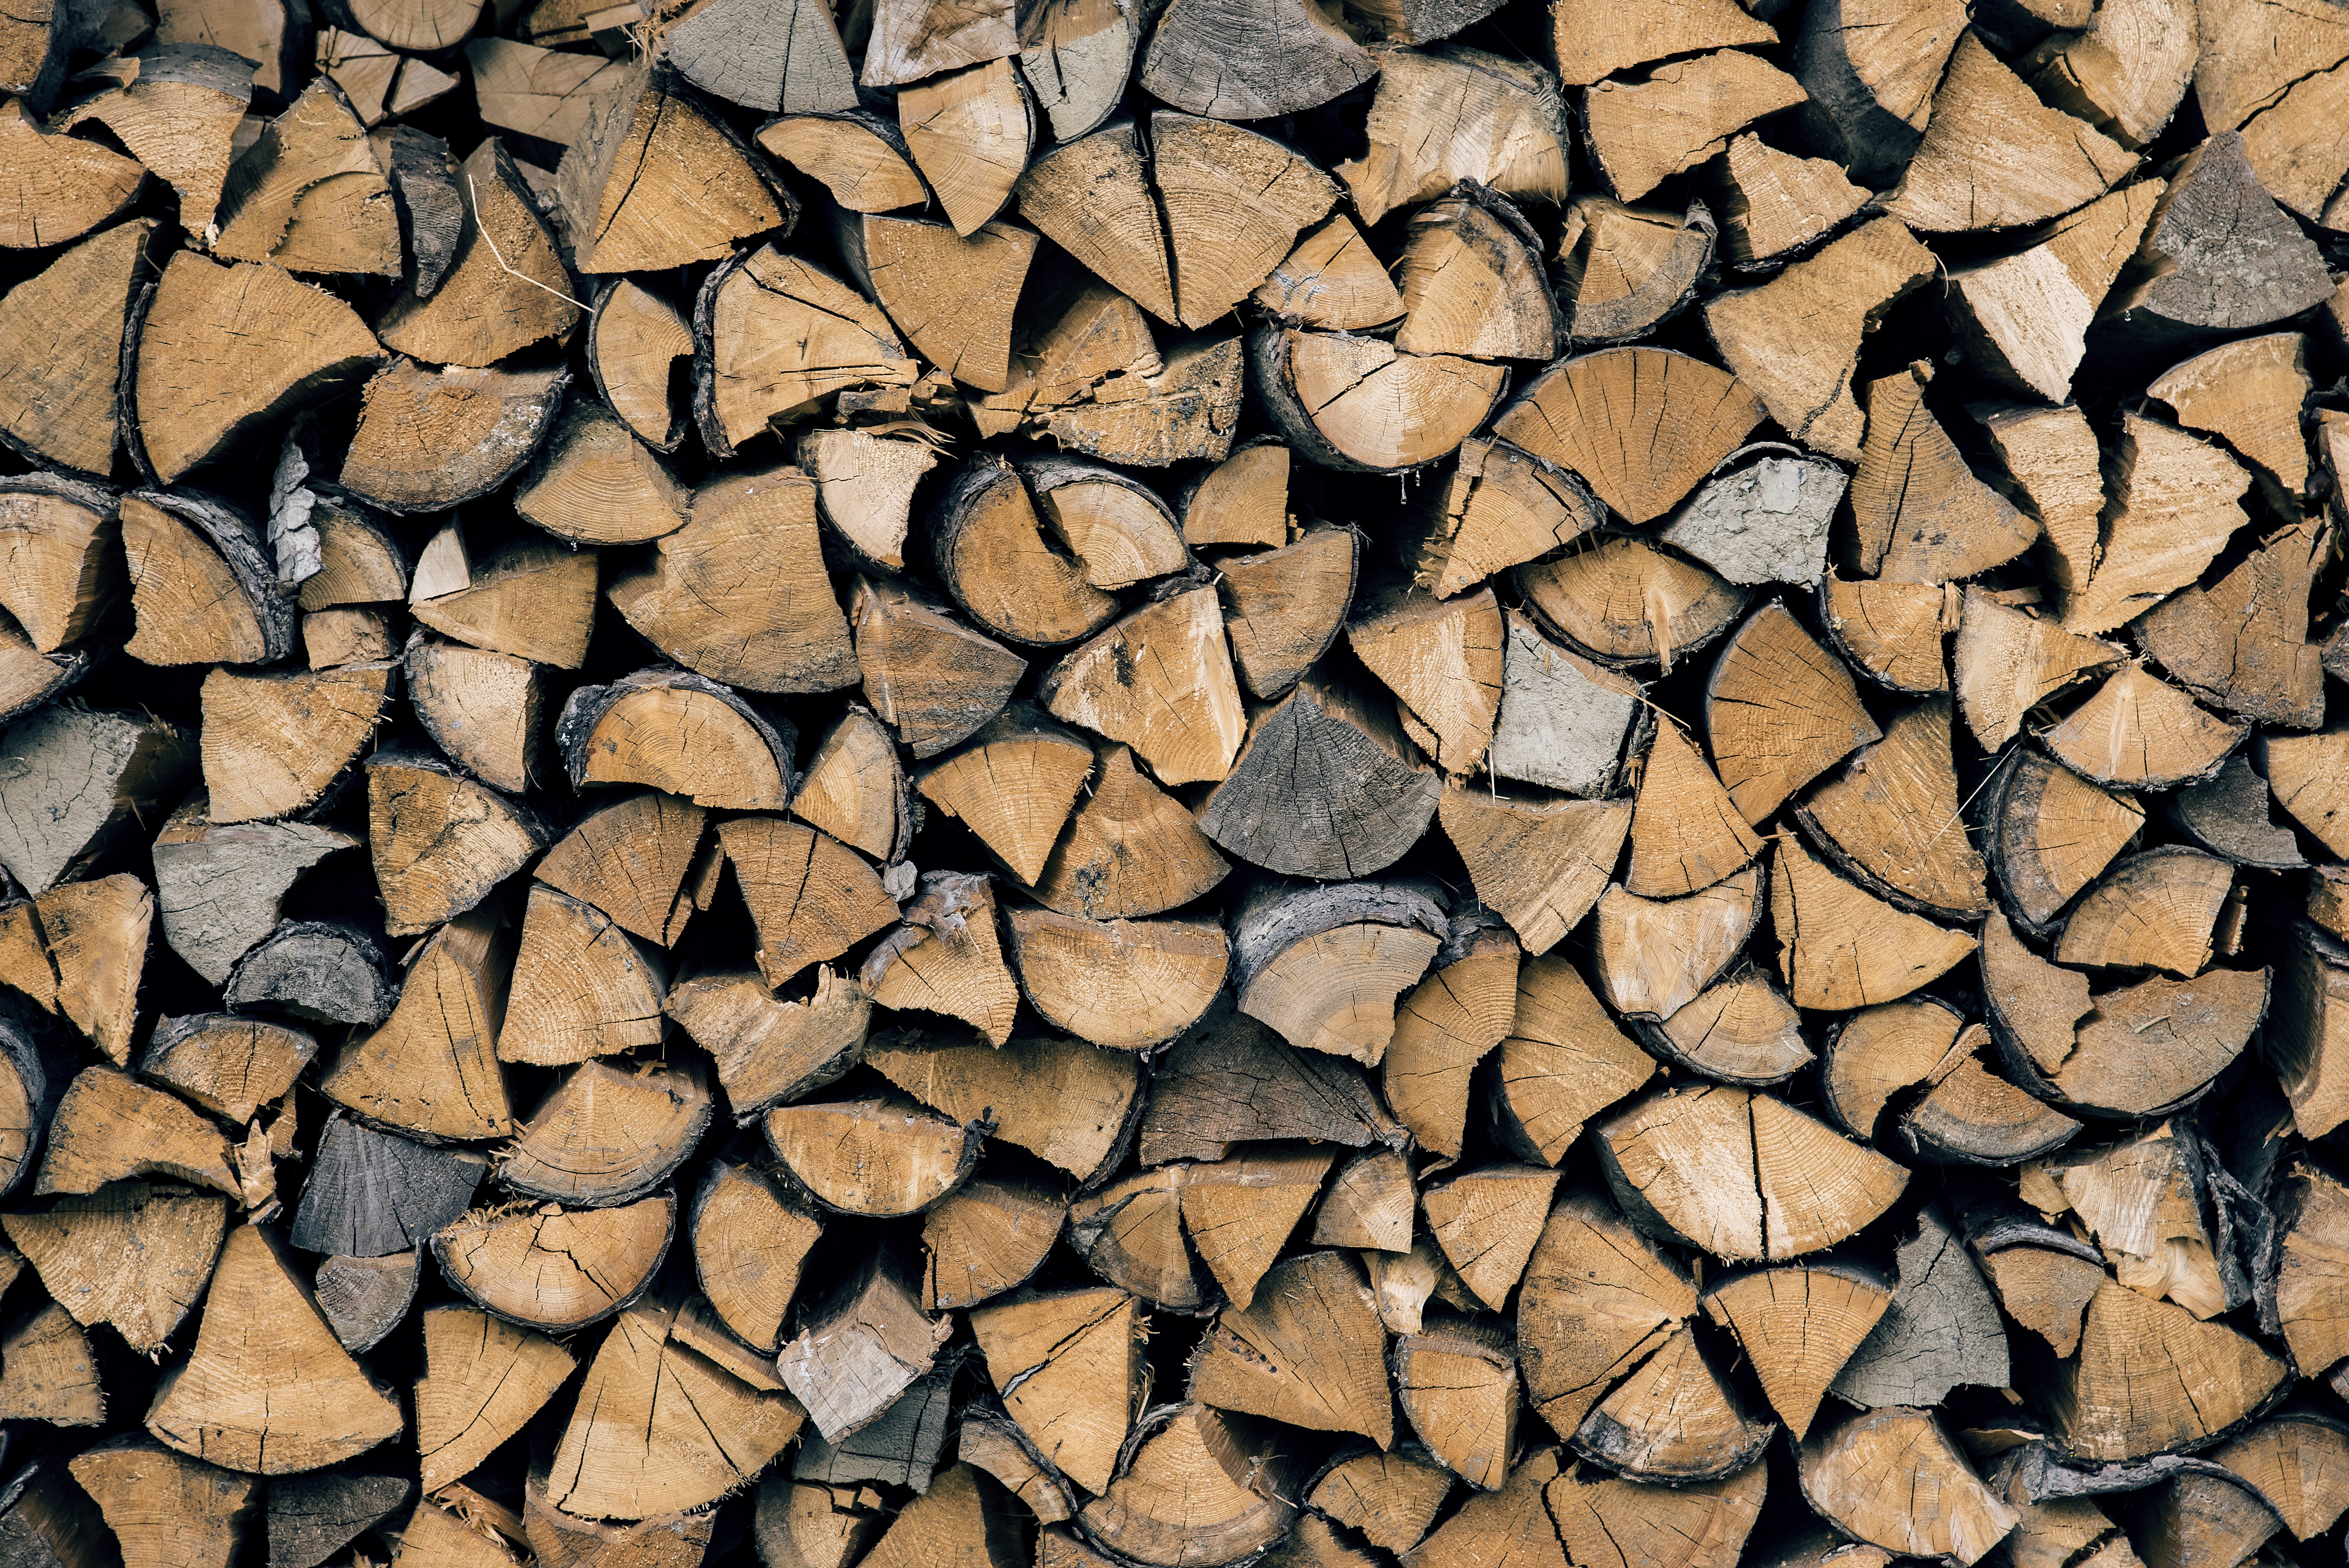 A stack of wedge-shaped firewood pieces